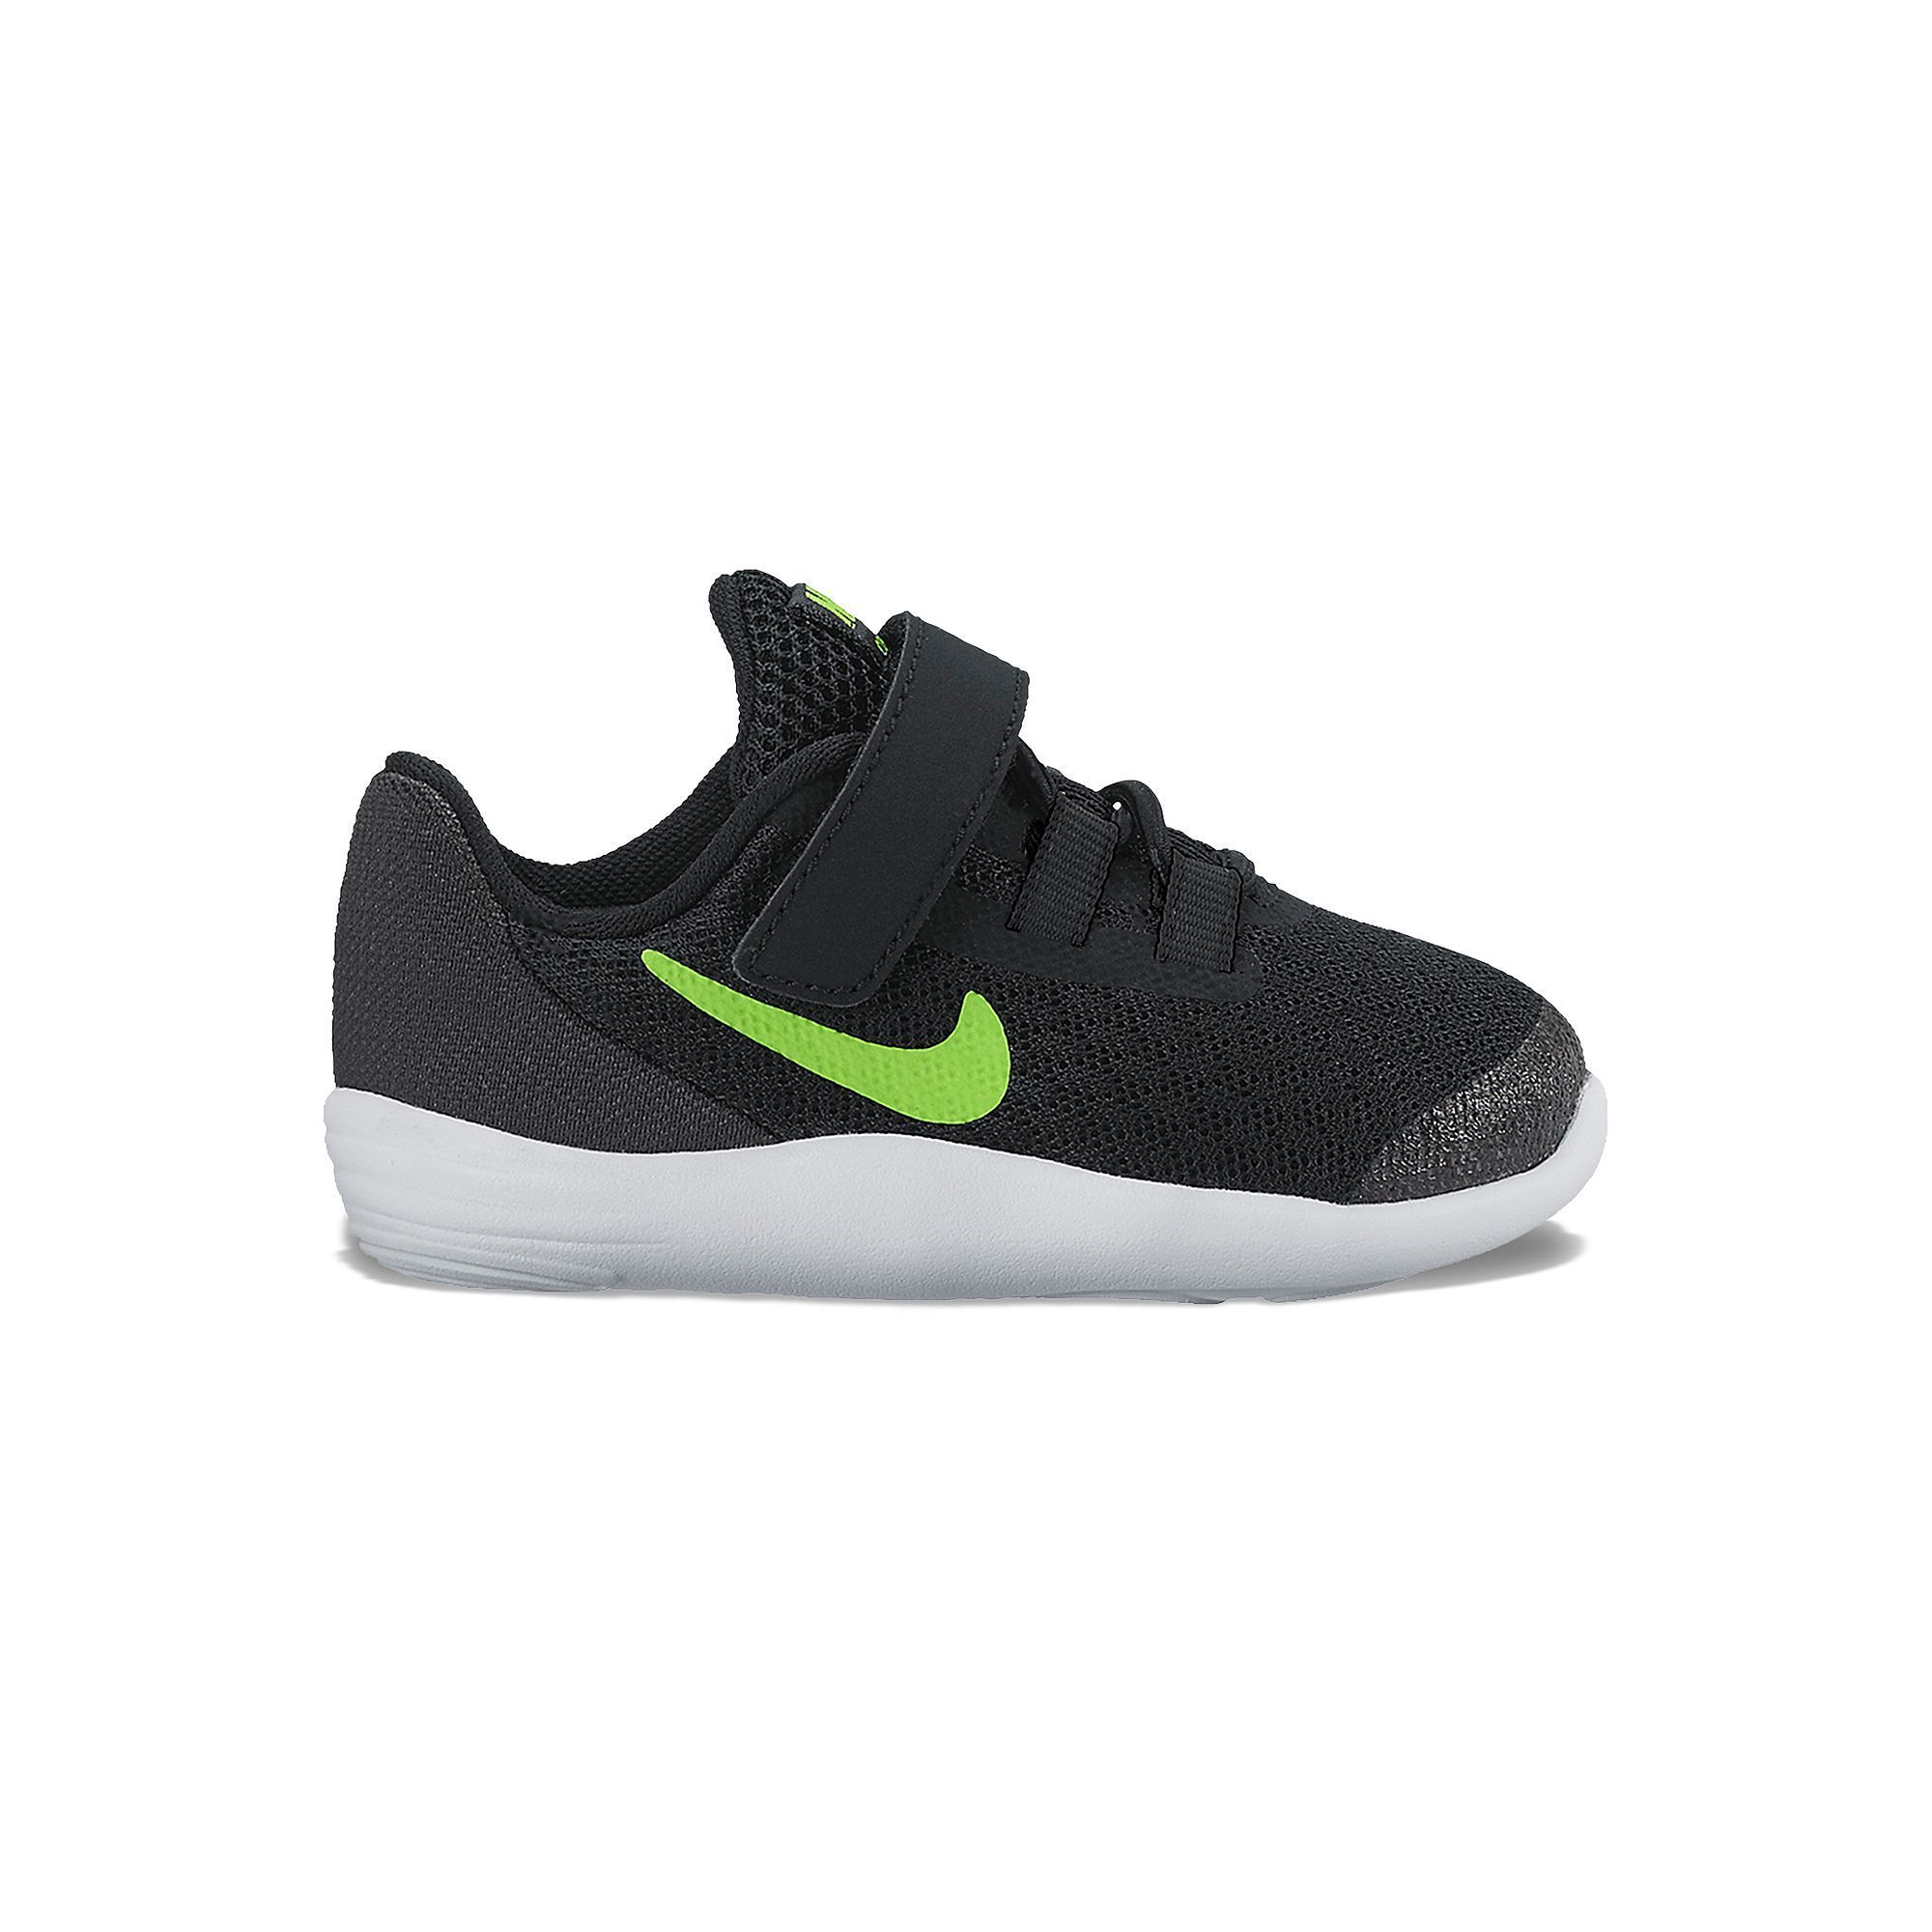 Nike LunarConverge Toddler Boys' Shoes, Size: 10 T, Oxford